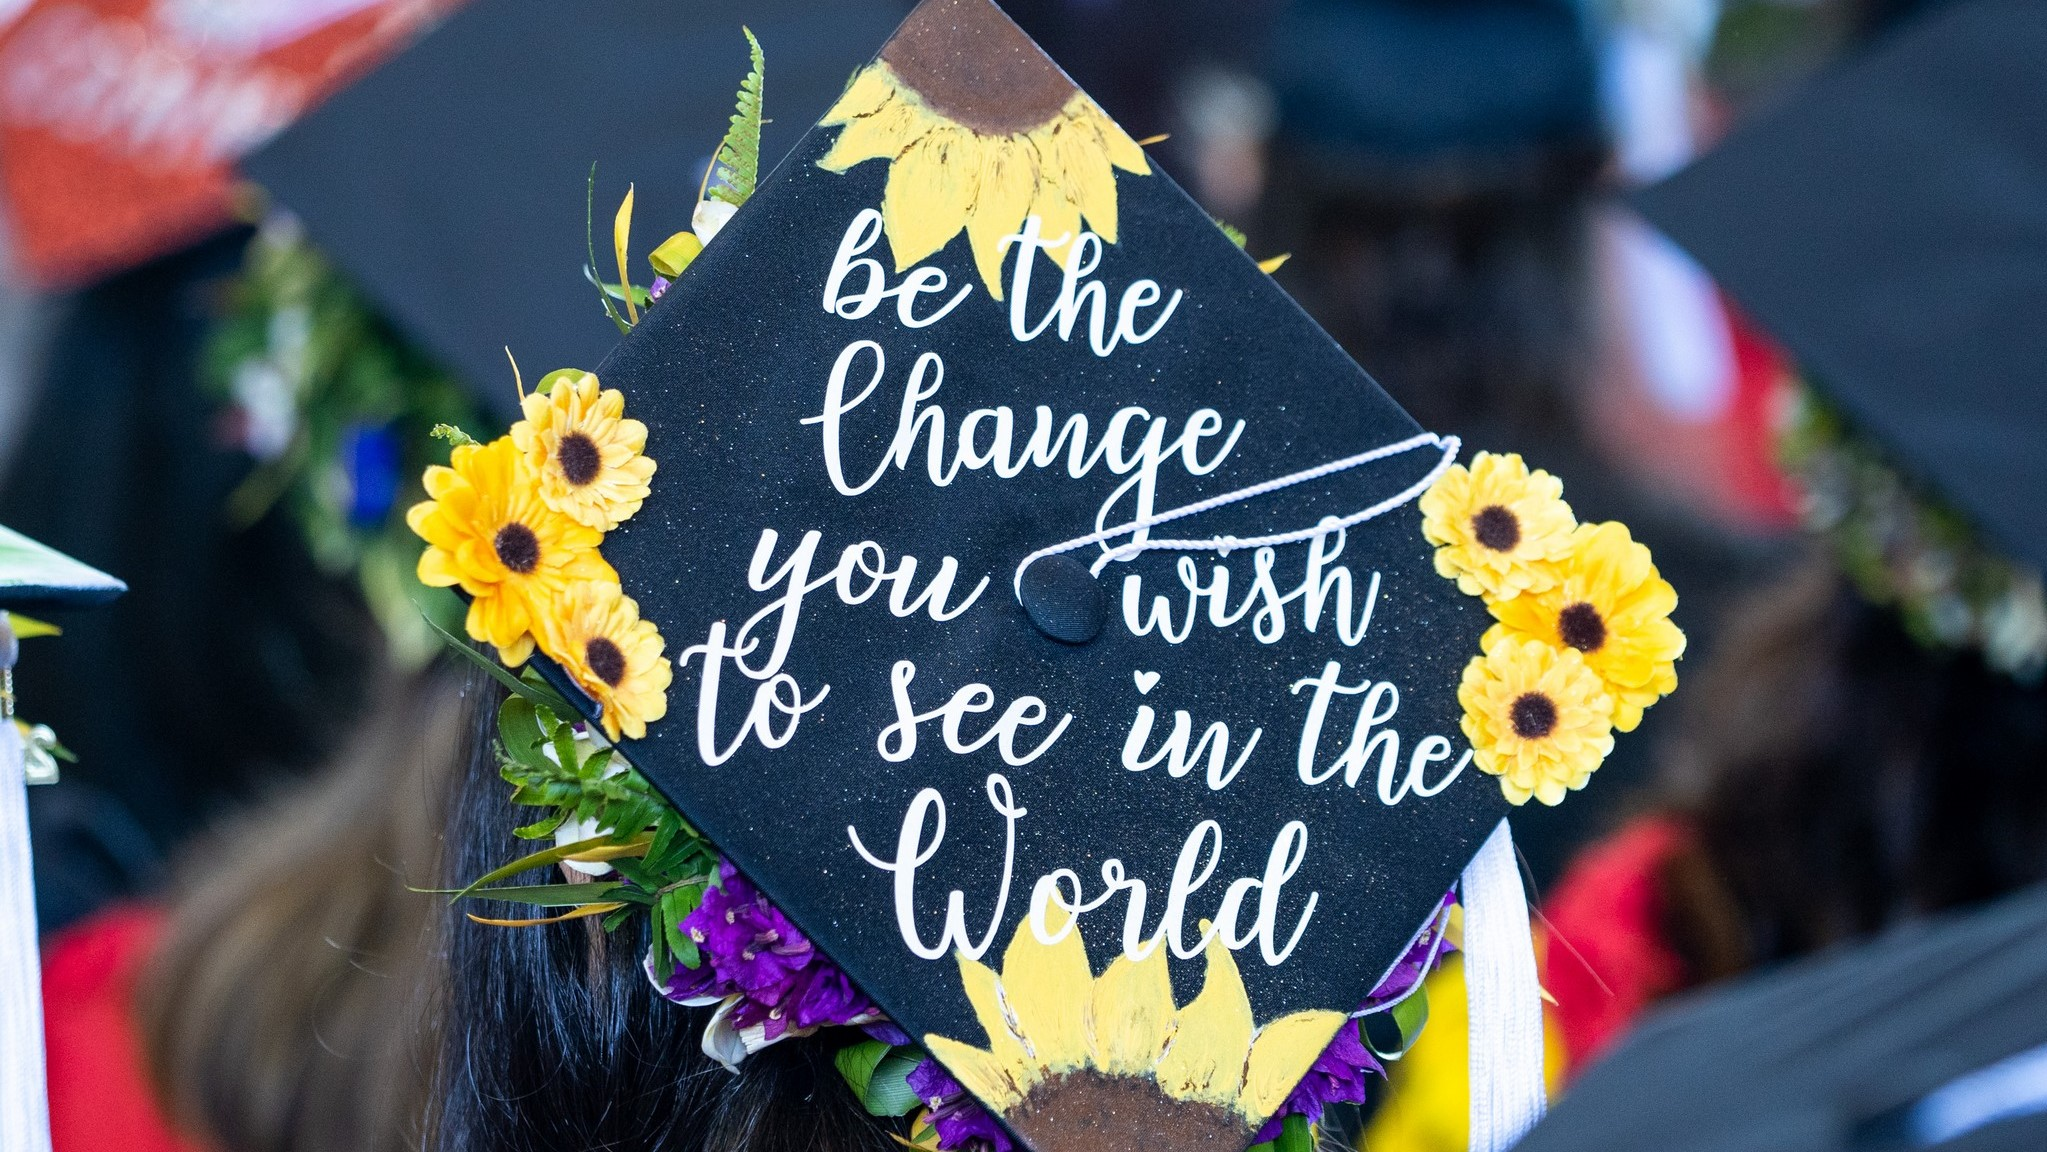 Mortarboard with wrods: Be the chancge you wish to see in the world.